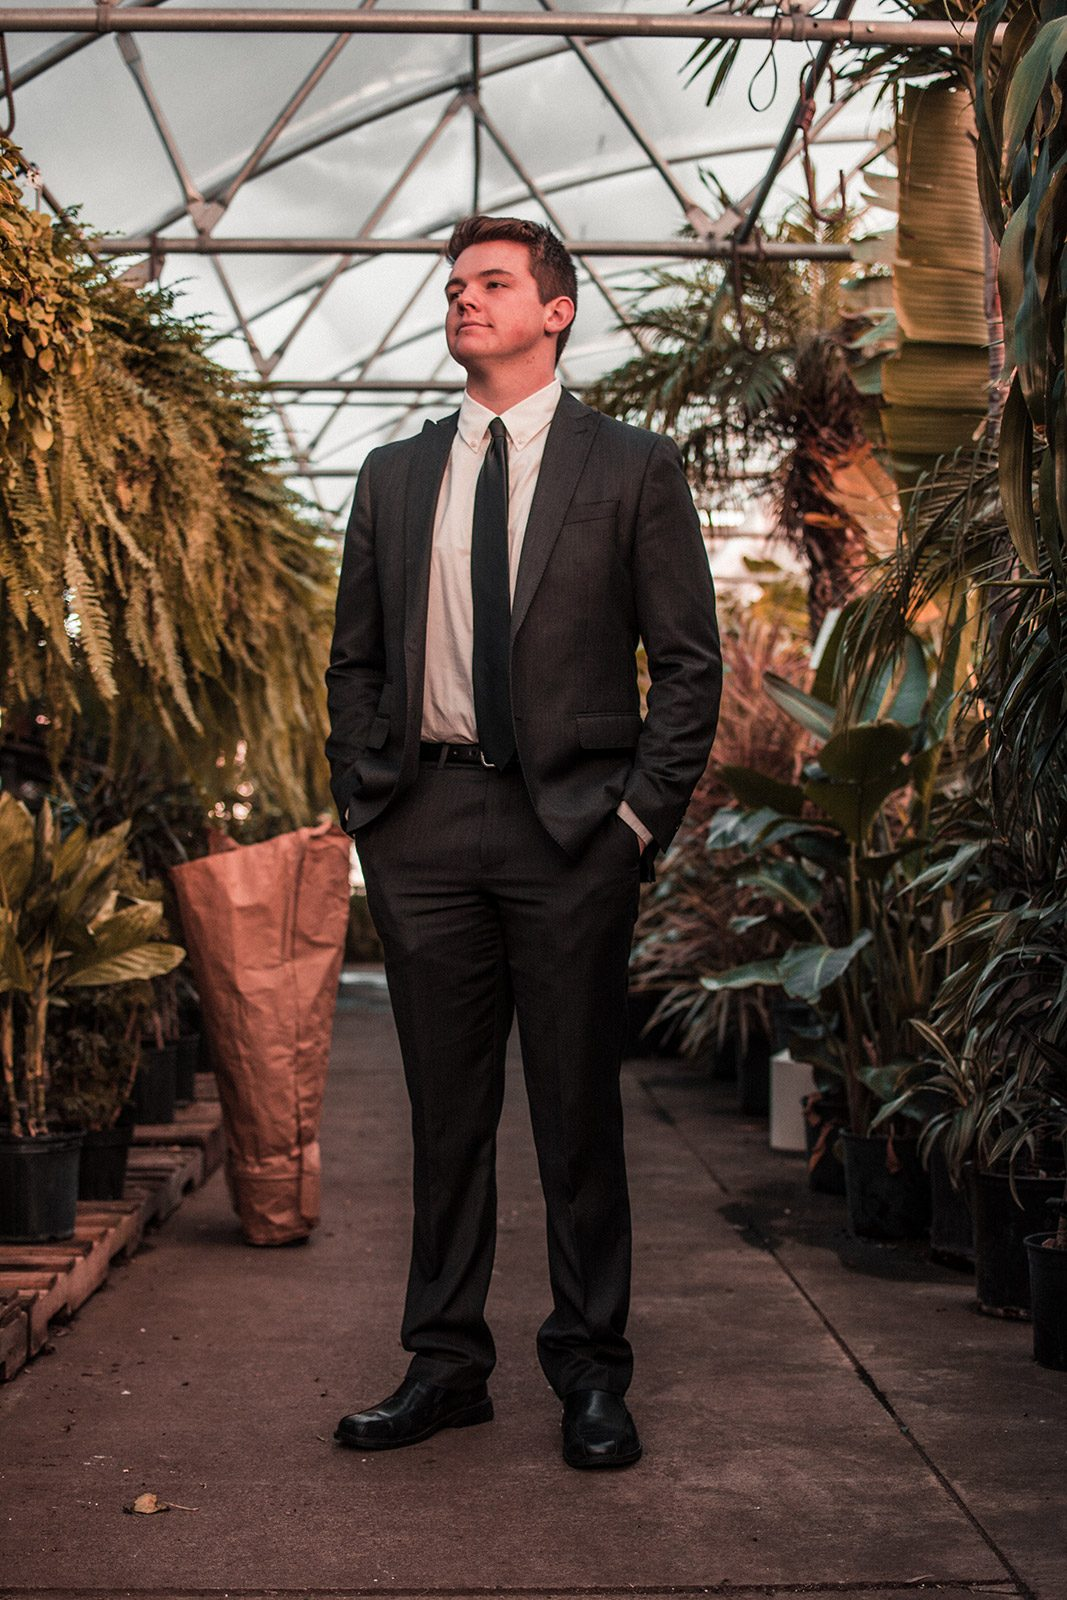 Young professional in a suit standing in a garden